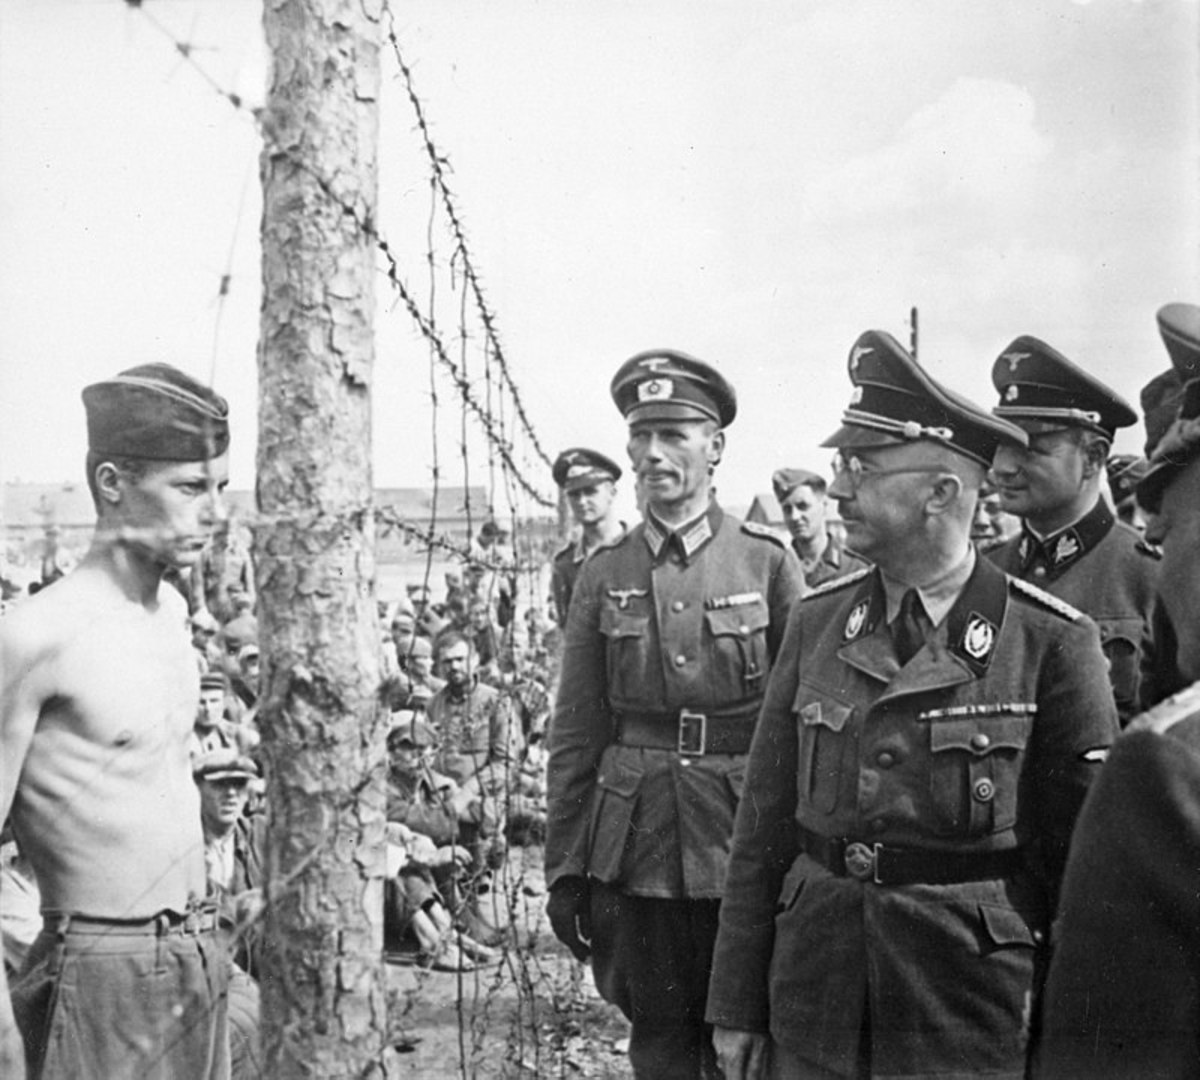 Himmler inspects a prison camp.